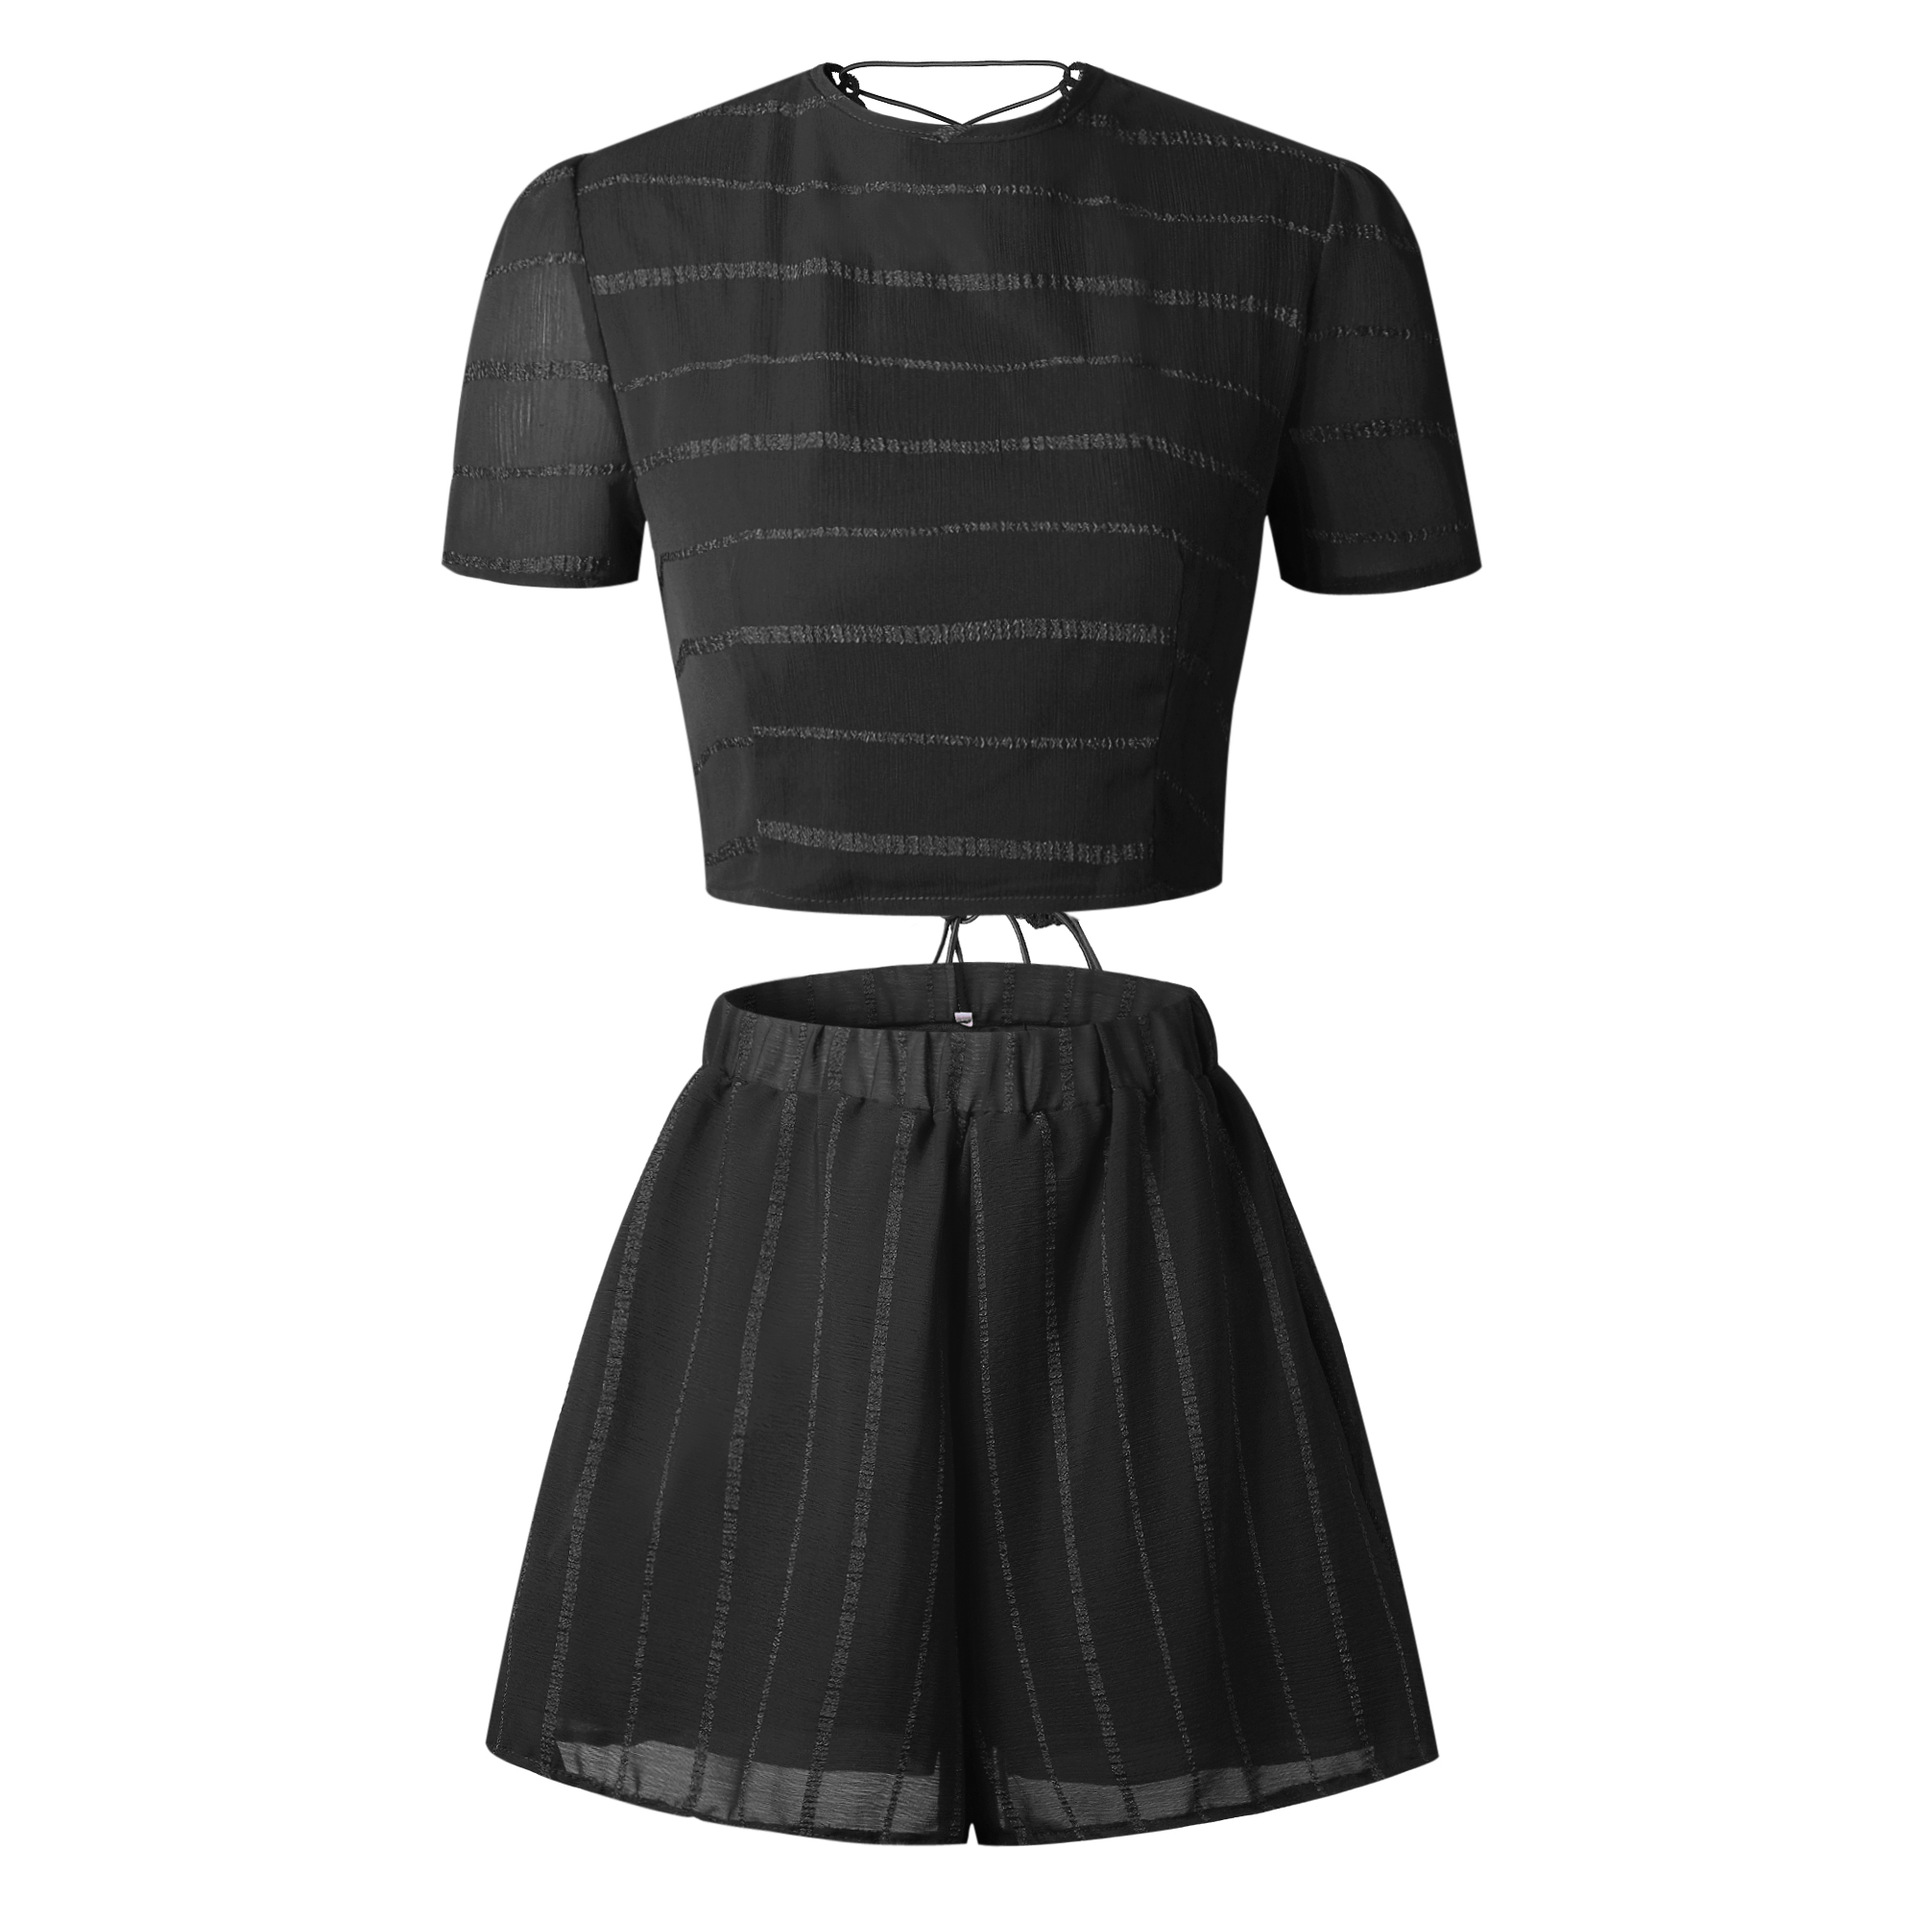 Fashion Lace-up Back Sets 2-piece Set For Women Spicy Short Sleeve Backless Crop Planting Top Fatal Red Black Shorts Costumes